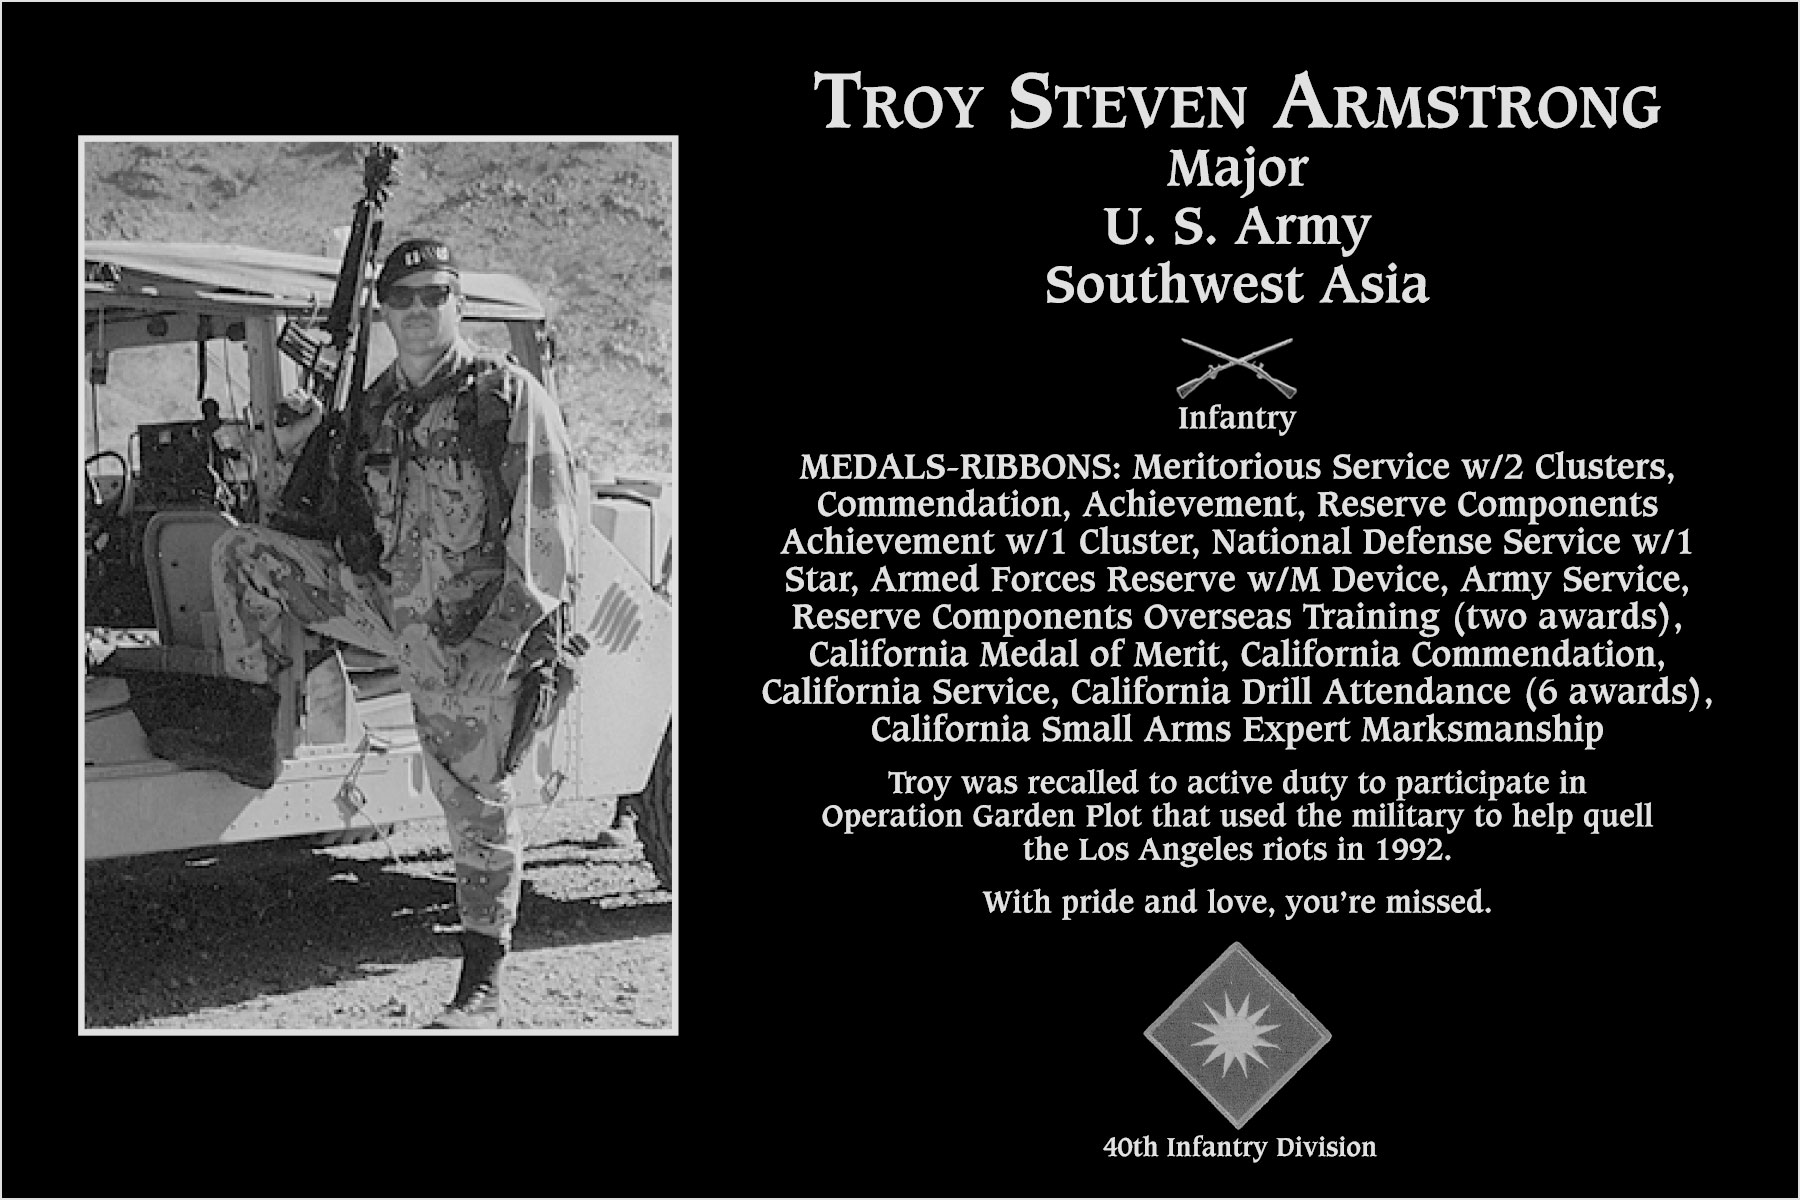 Troy Steven Armstrong